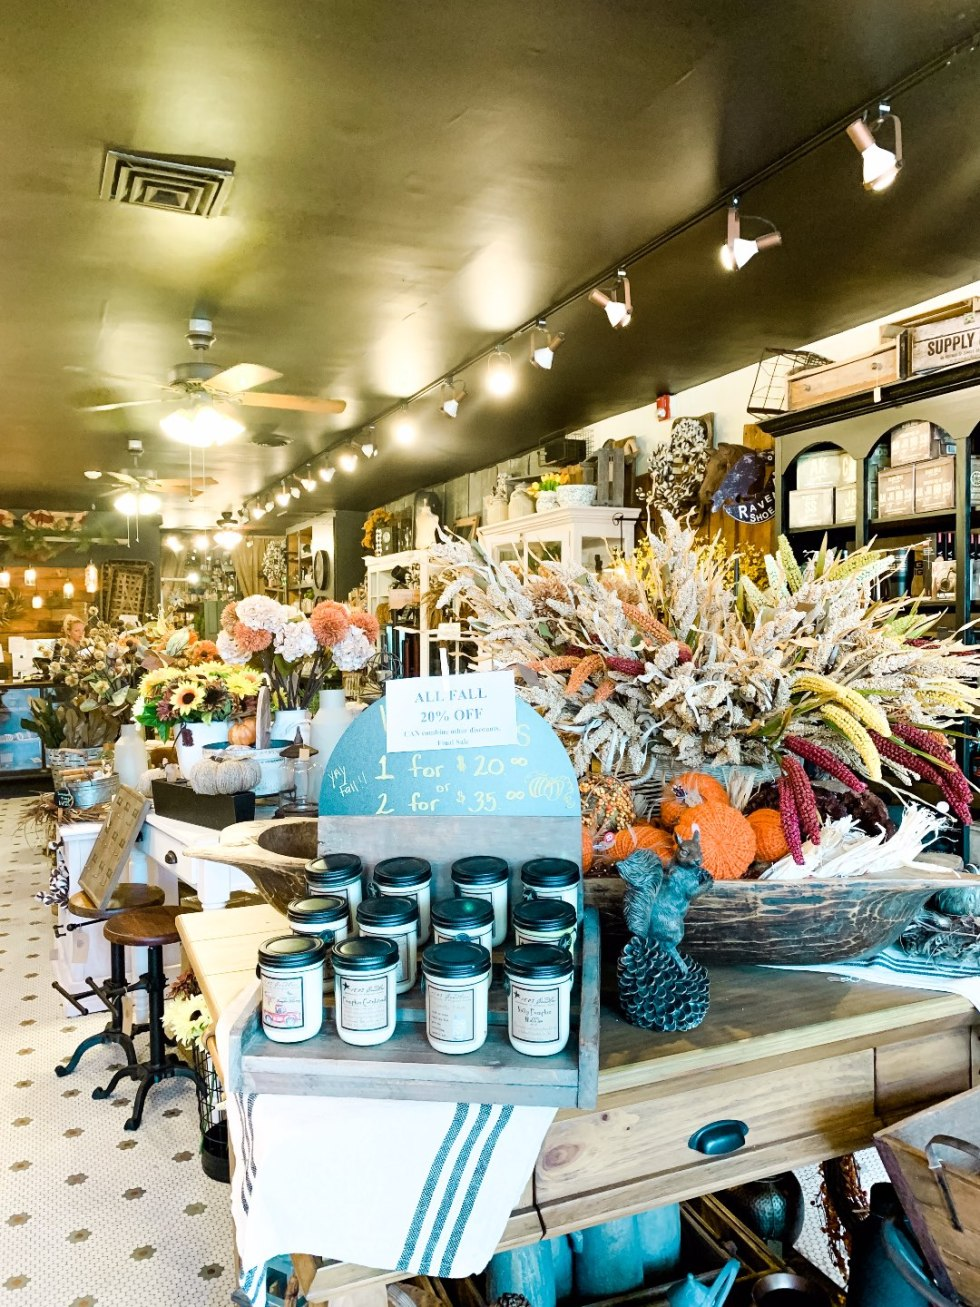 Eastern North Carolina Travel Guide: Top 10 Things to Do in Goldsboro NC by popular North Carolina blog, I'm Fixin' To: image of a boutique shop.